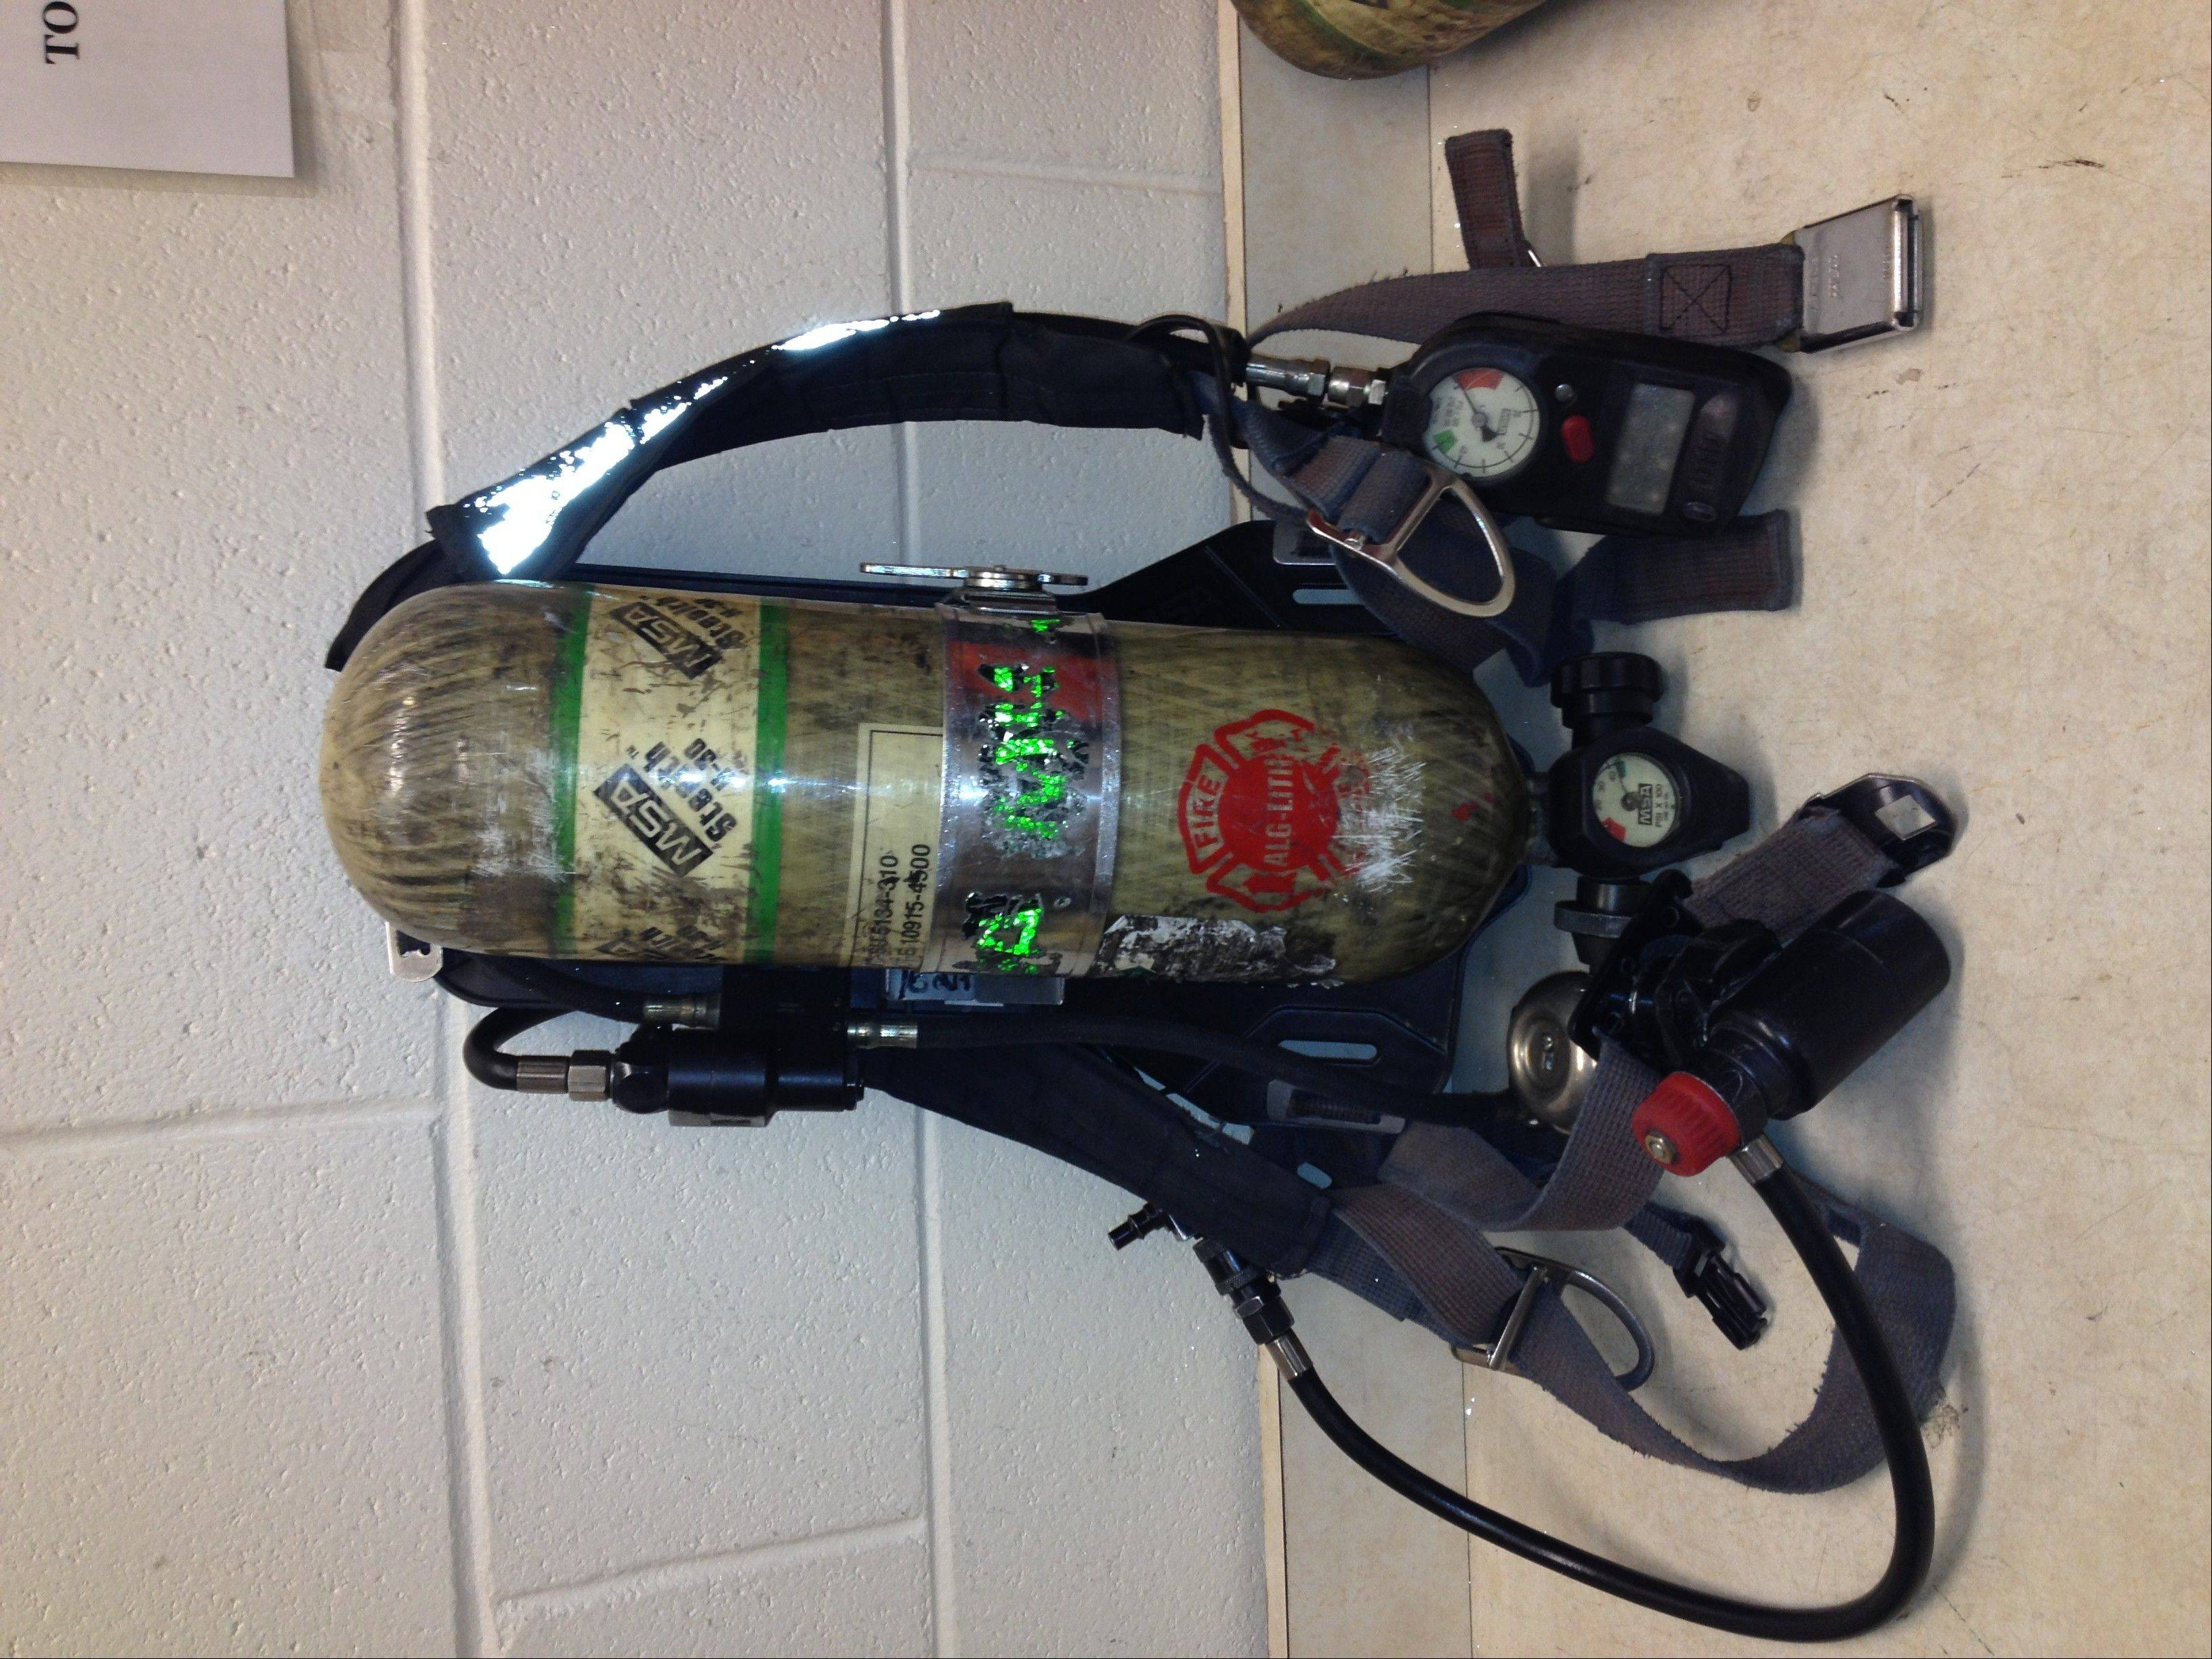 This is one of the 55 air packs the Algonquin/Lake in the Hills Fire Protection District will replace.